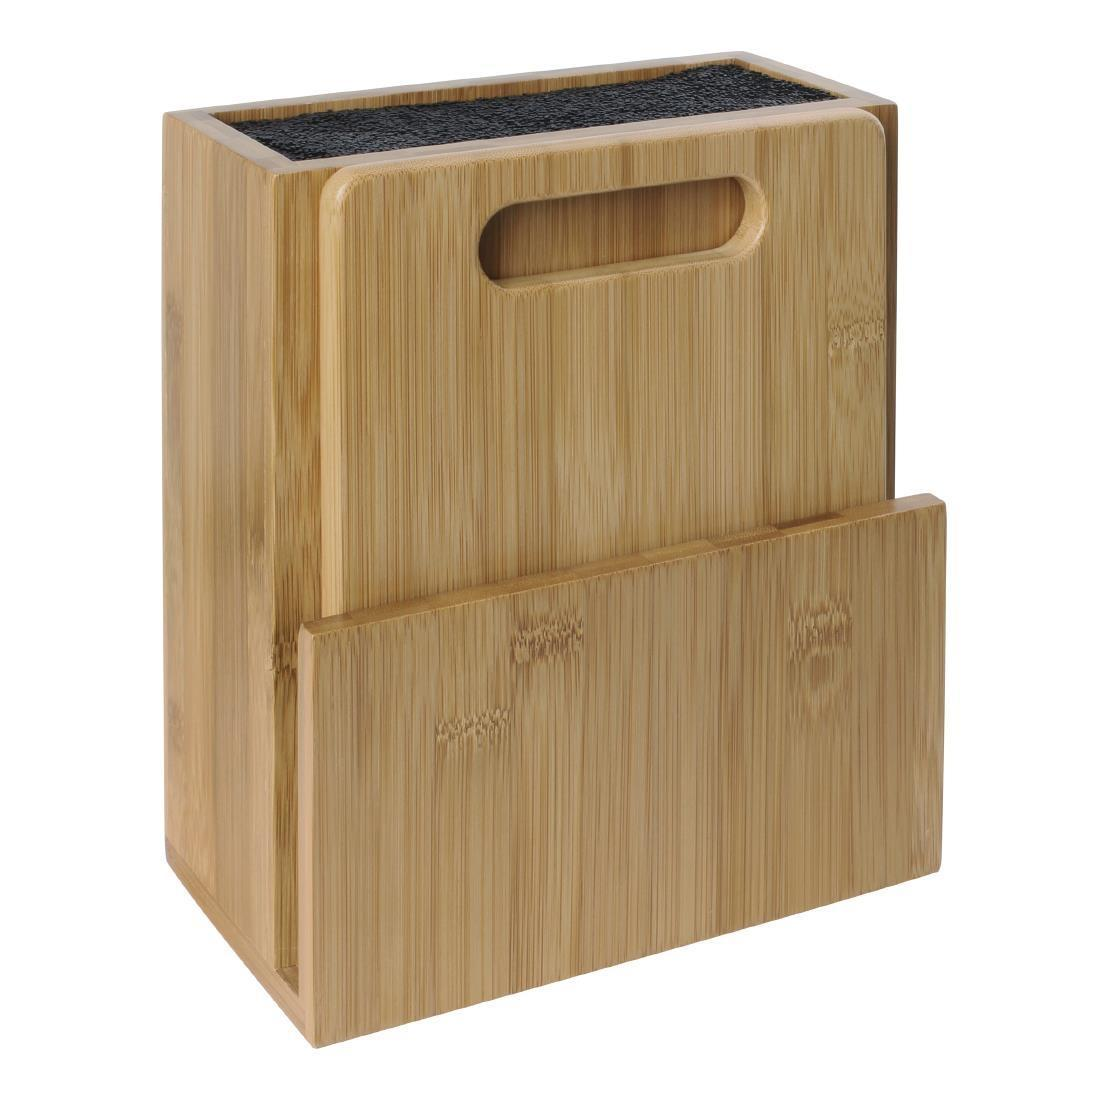 Vogue Wooden Universal Knife Block and Chopping Board - Each - CP863